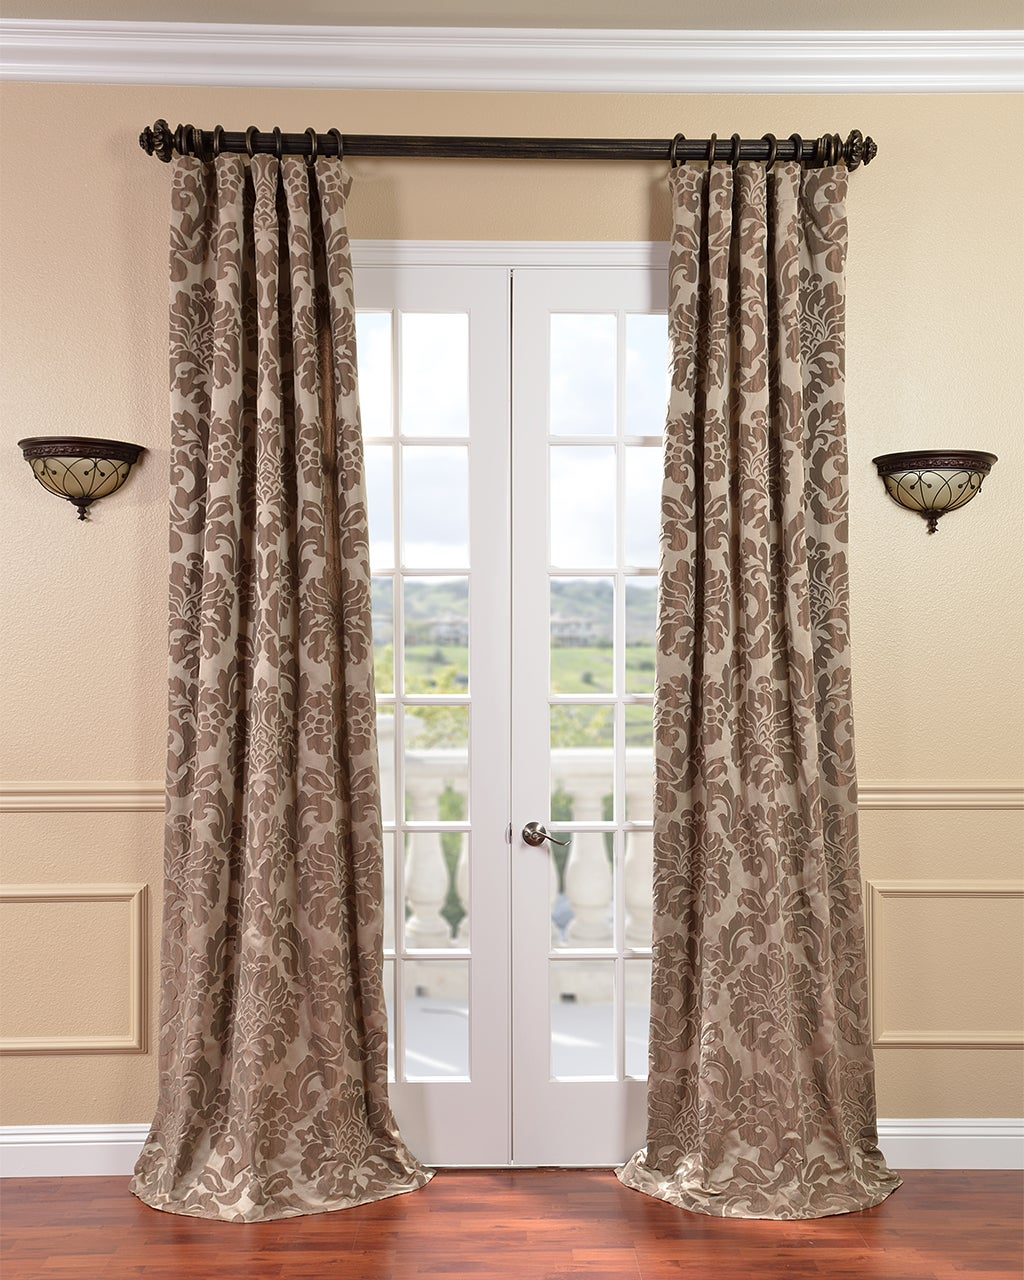 Astoria Taupe/ Mushroom Faux Silk Jacquard Curtains